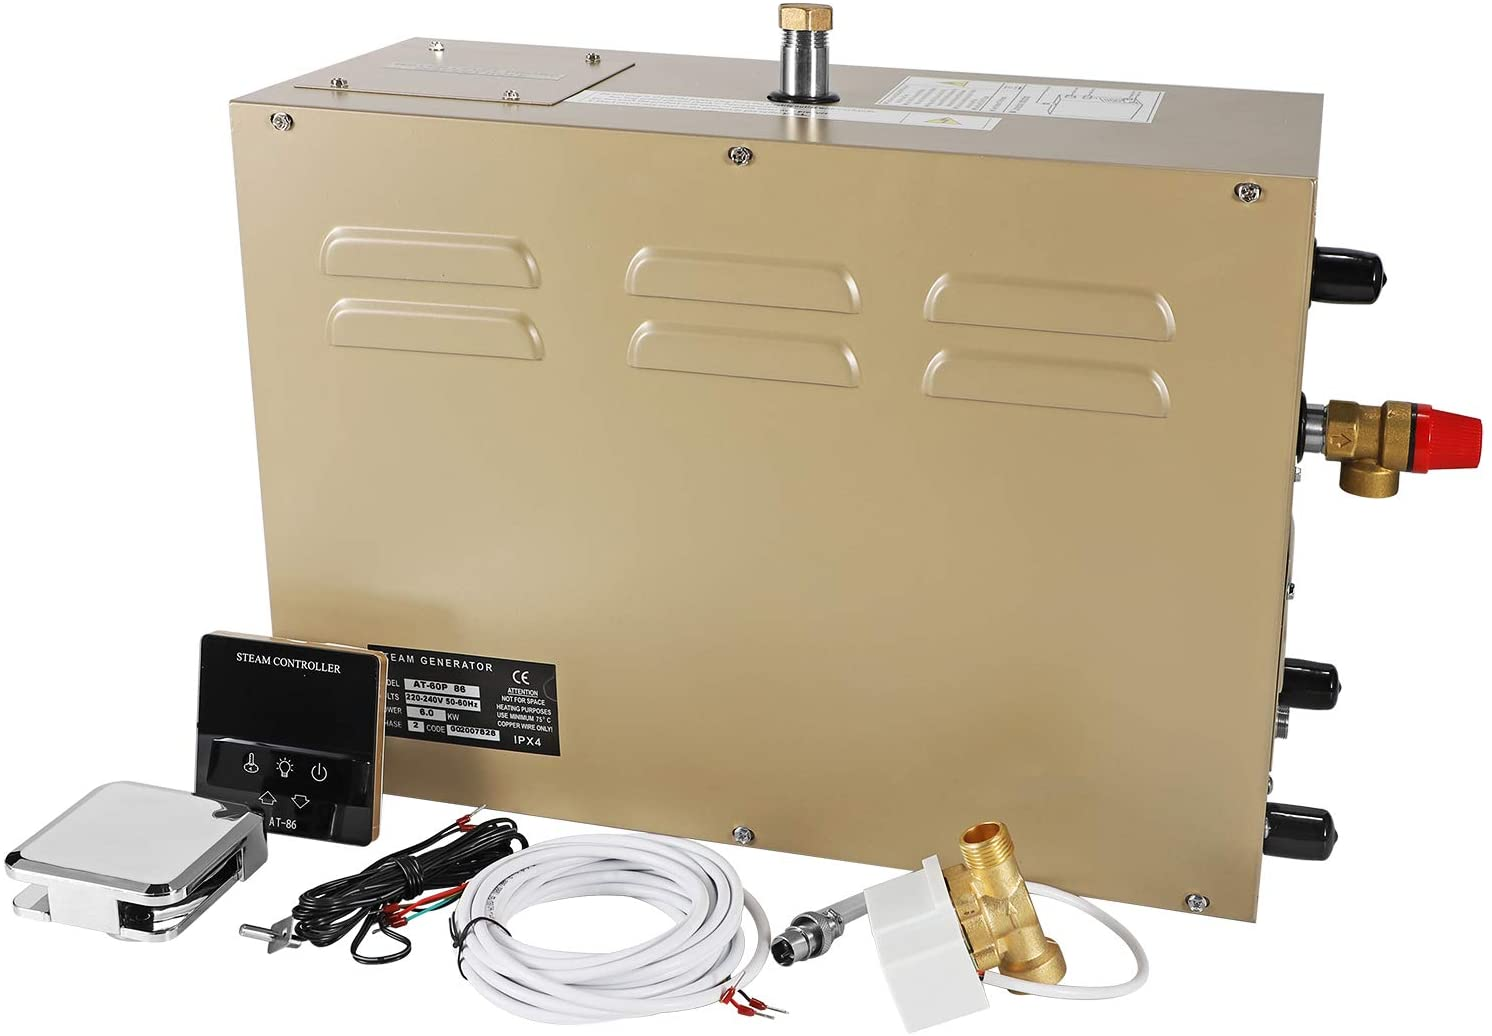 CGOLDENWALL 9KW Commercial Self-Draining Digital Steam Generator Shower System Sauna Bath Home SPA 30 min to 12 Hours with Waterproof controler For suitable space heating 9 m³ (220V)